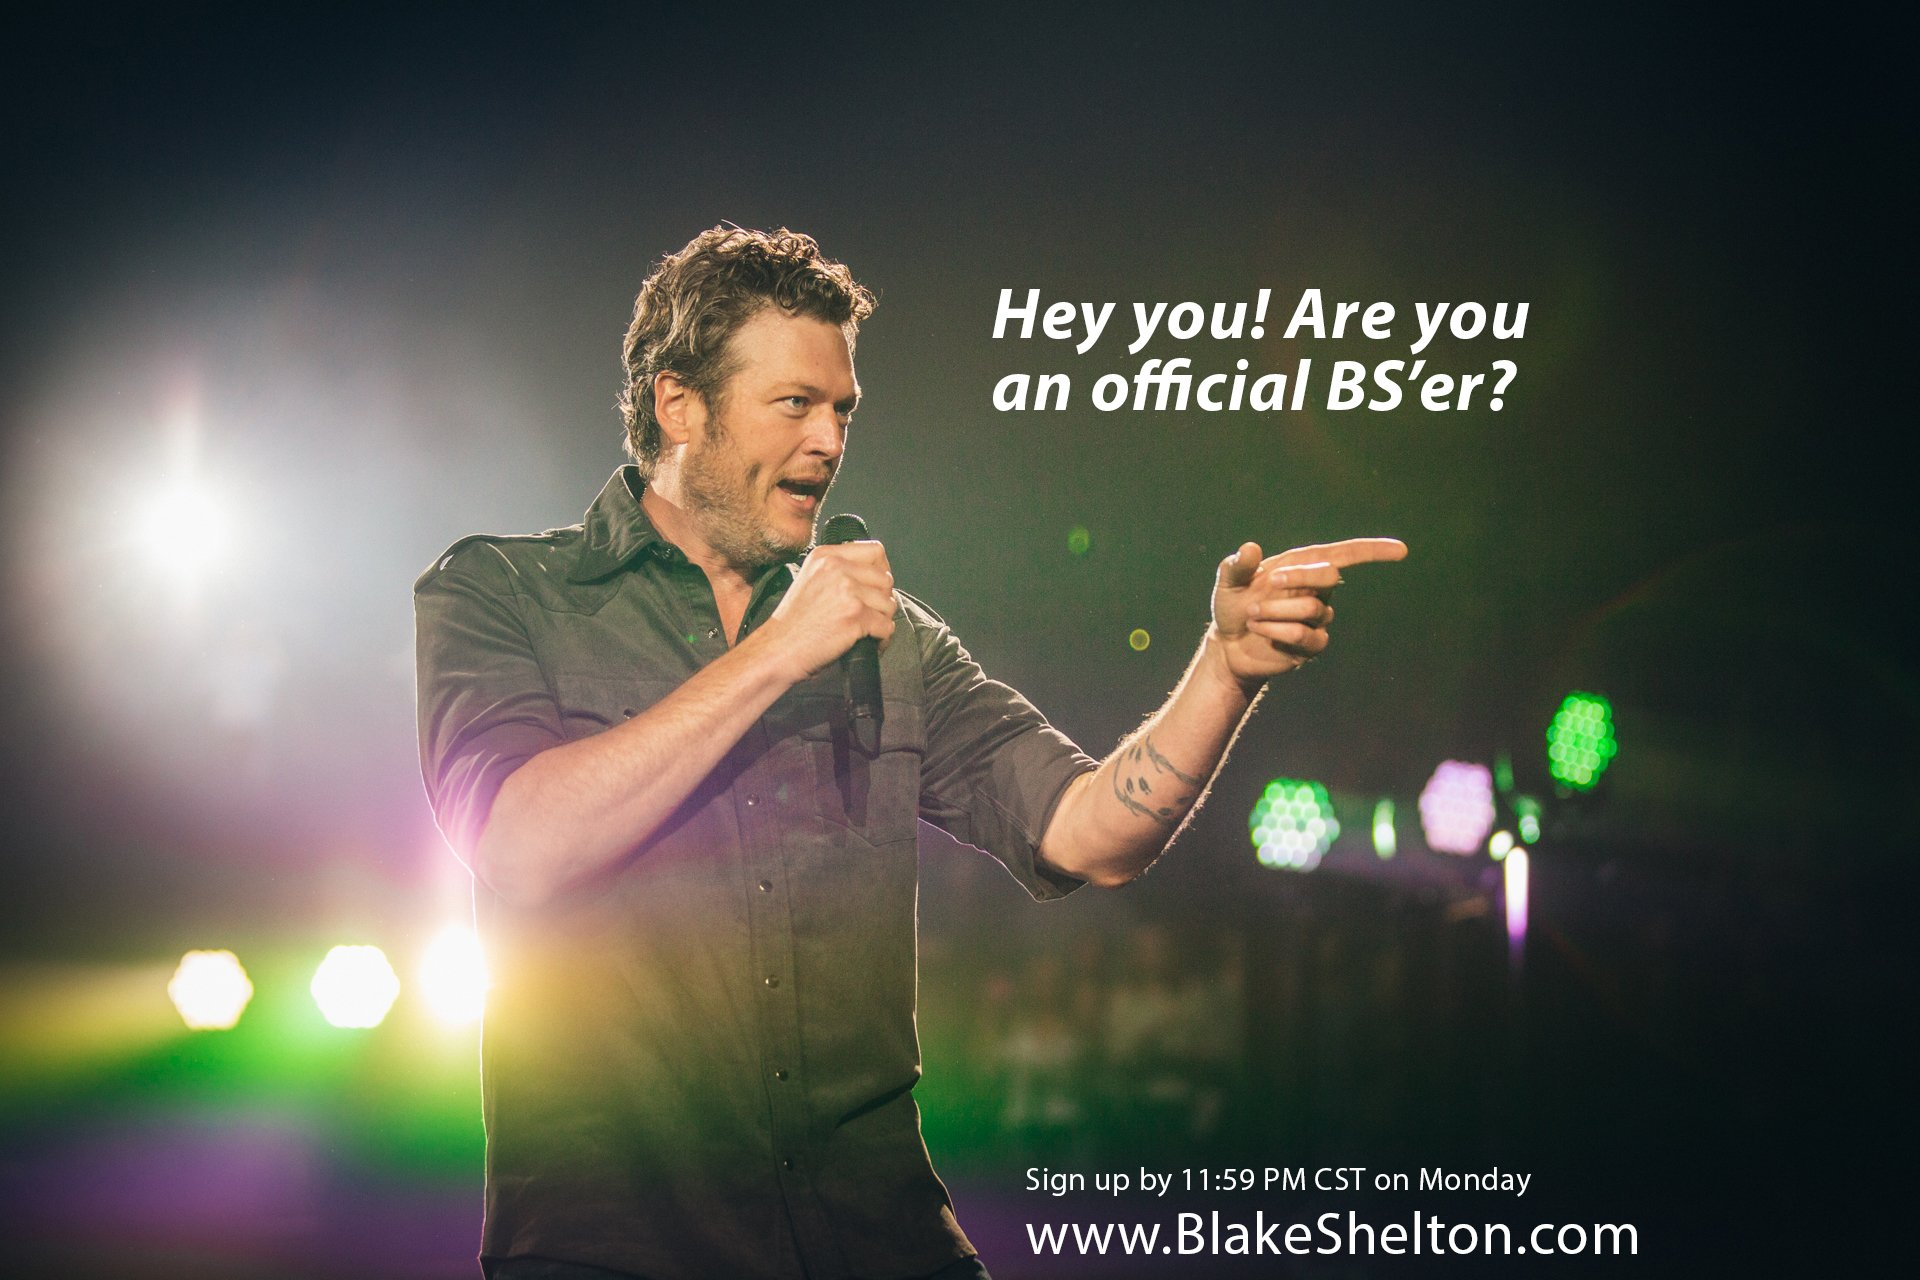 BIG announcement coming! Are you a BS'er? Sign up by 11:59PM CST Monday for exclusive info. - Team BS https://t.co/wg6c4QFOc2